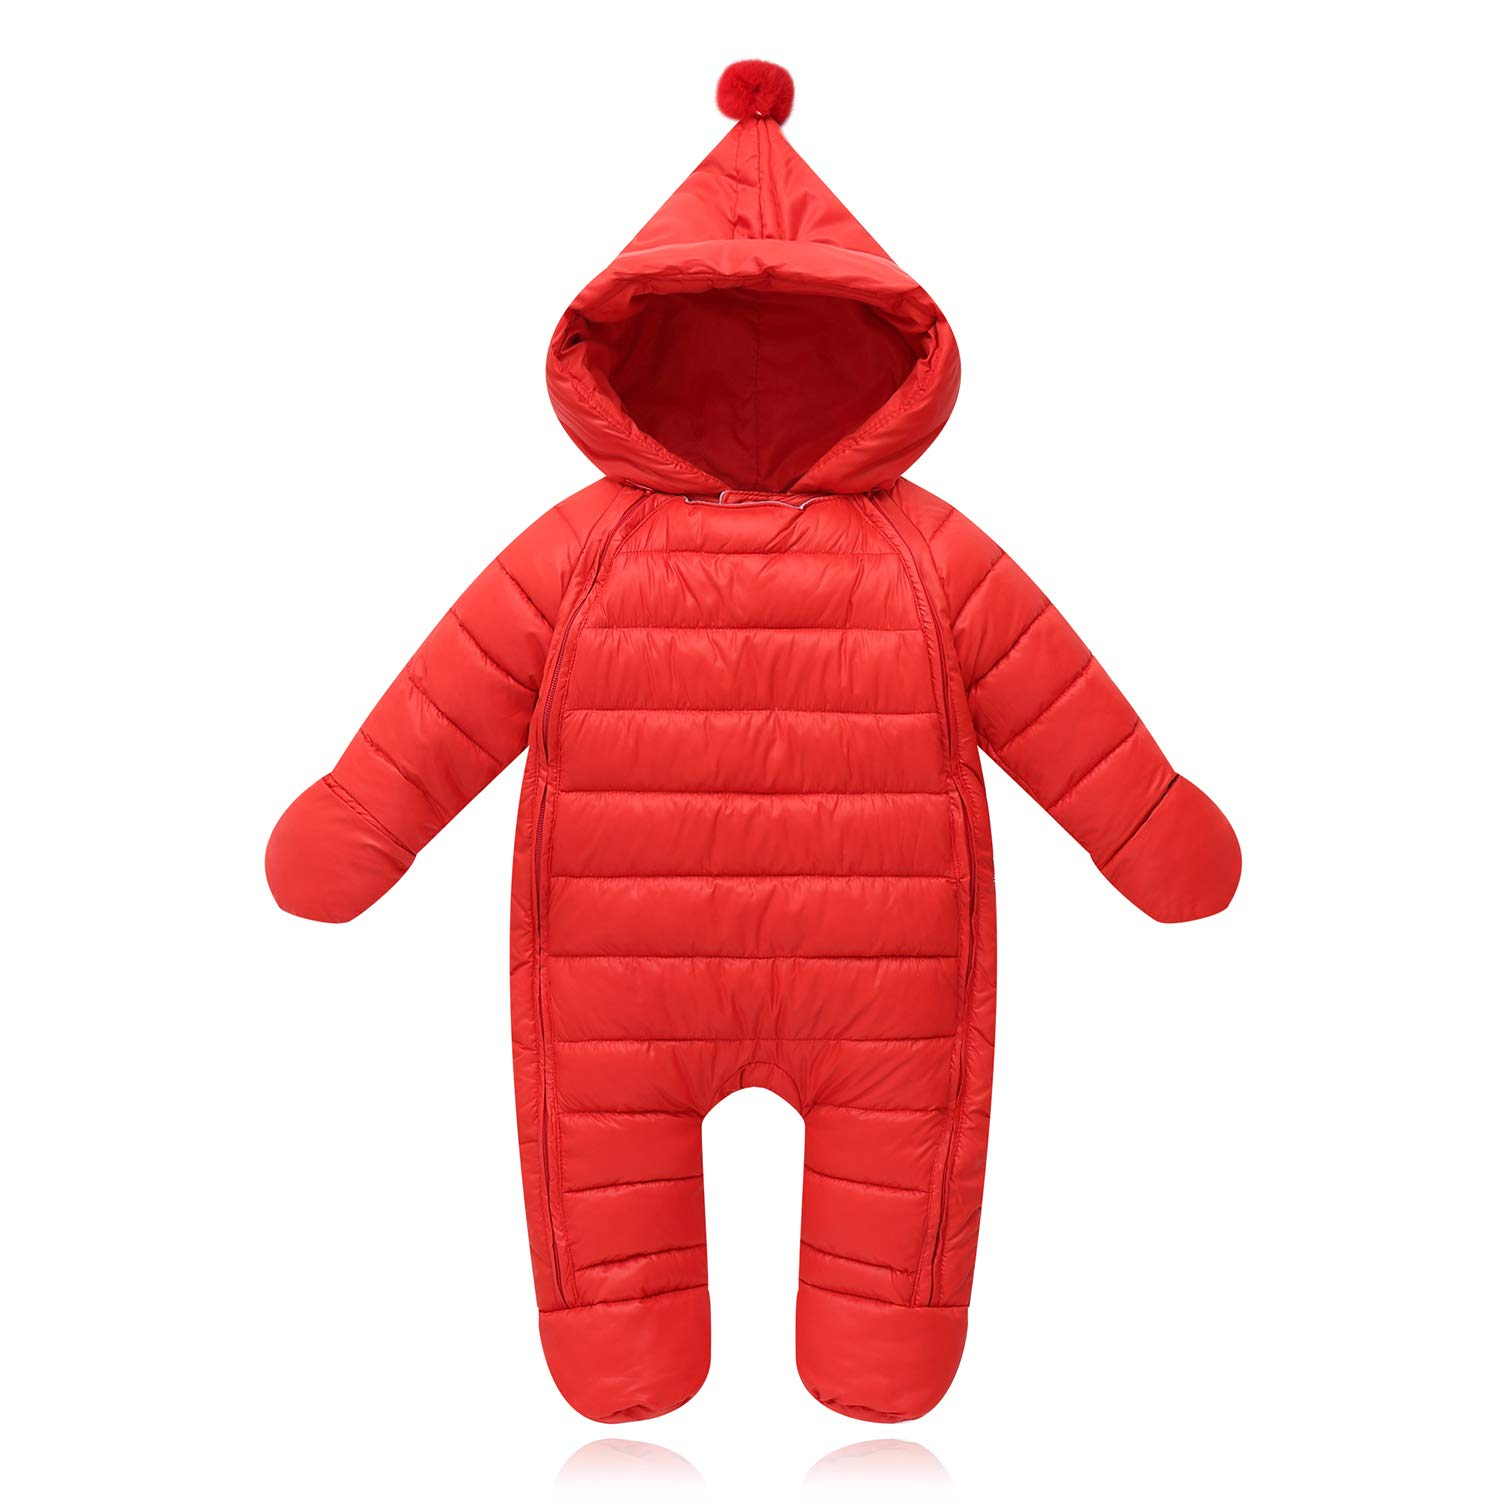 Unisex Baby Boys Girls Footed Jumpsuit Pram Bunting One-Piece Romper Winter Outerwear Jacket Snow Coat Infant Toddler Costume, Red, 5-10 Months by Ohrwurm